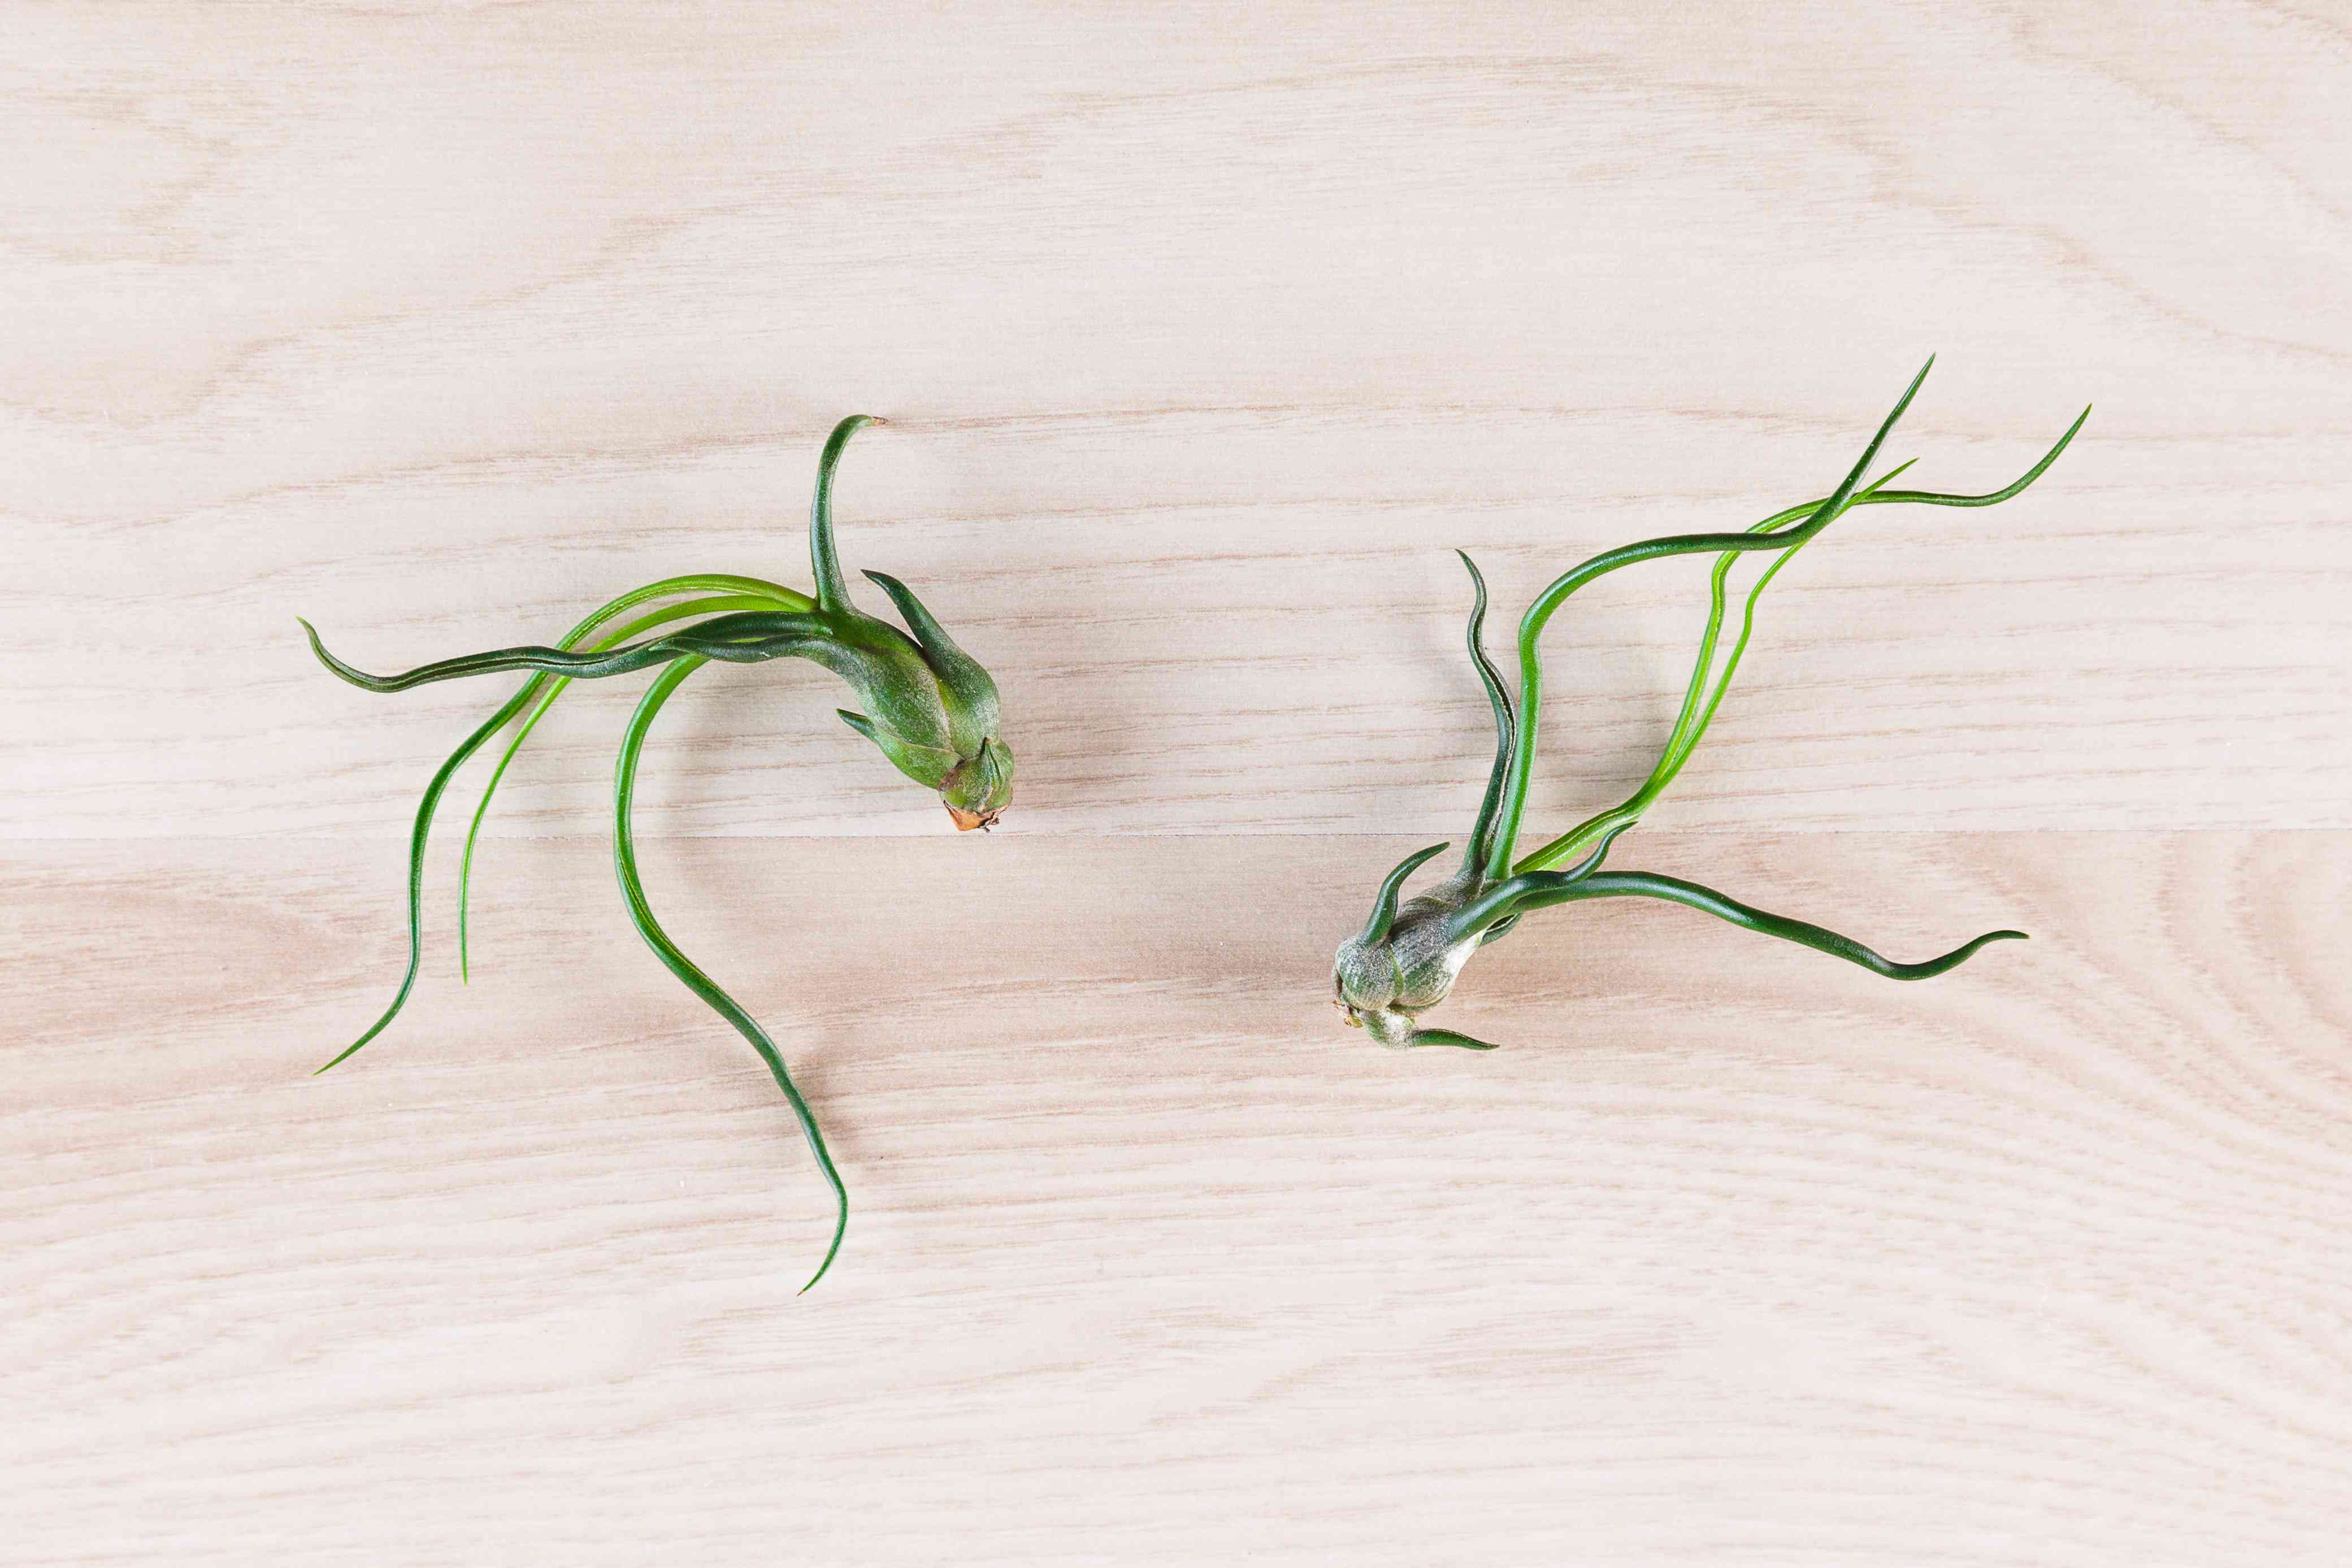 Bulbous air plants with scant green leaves